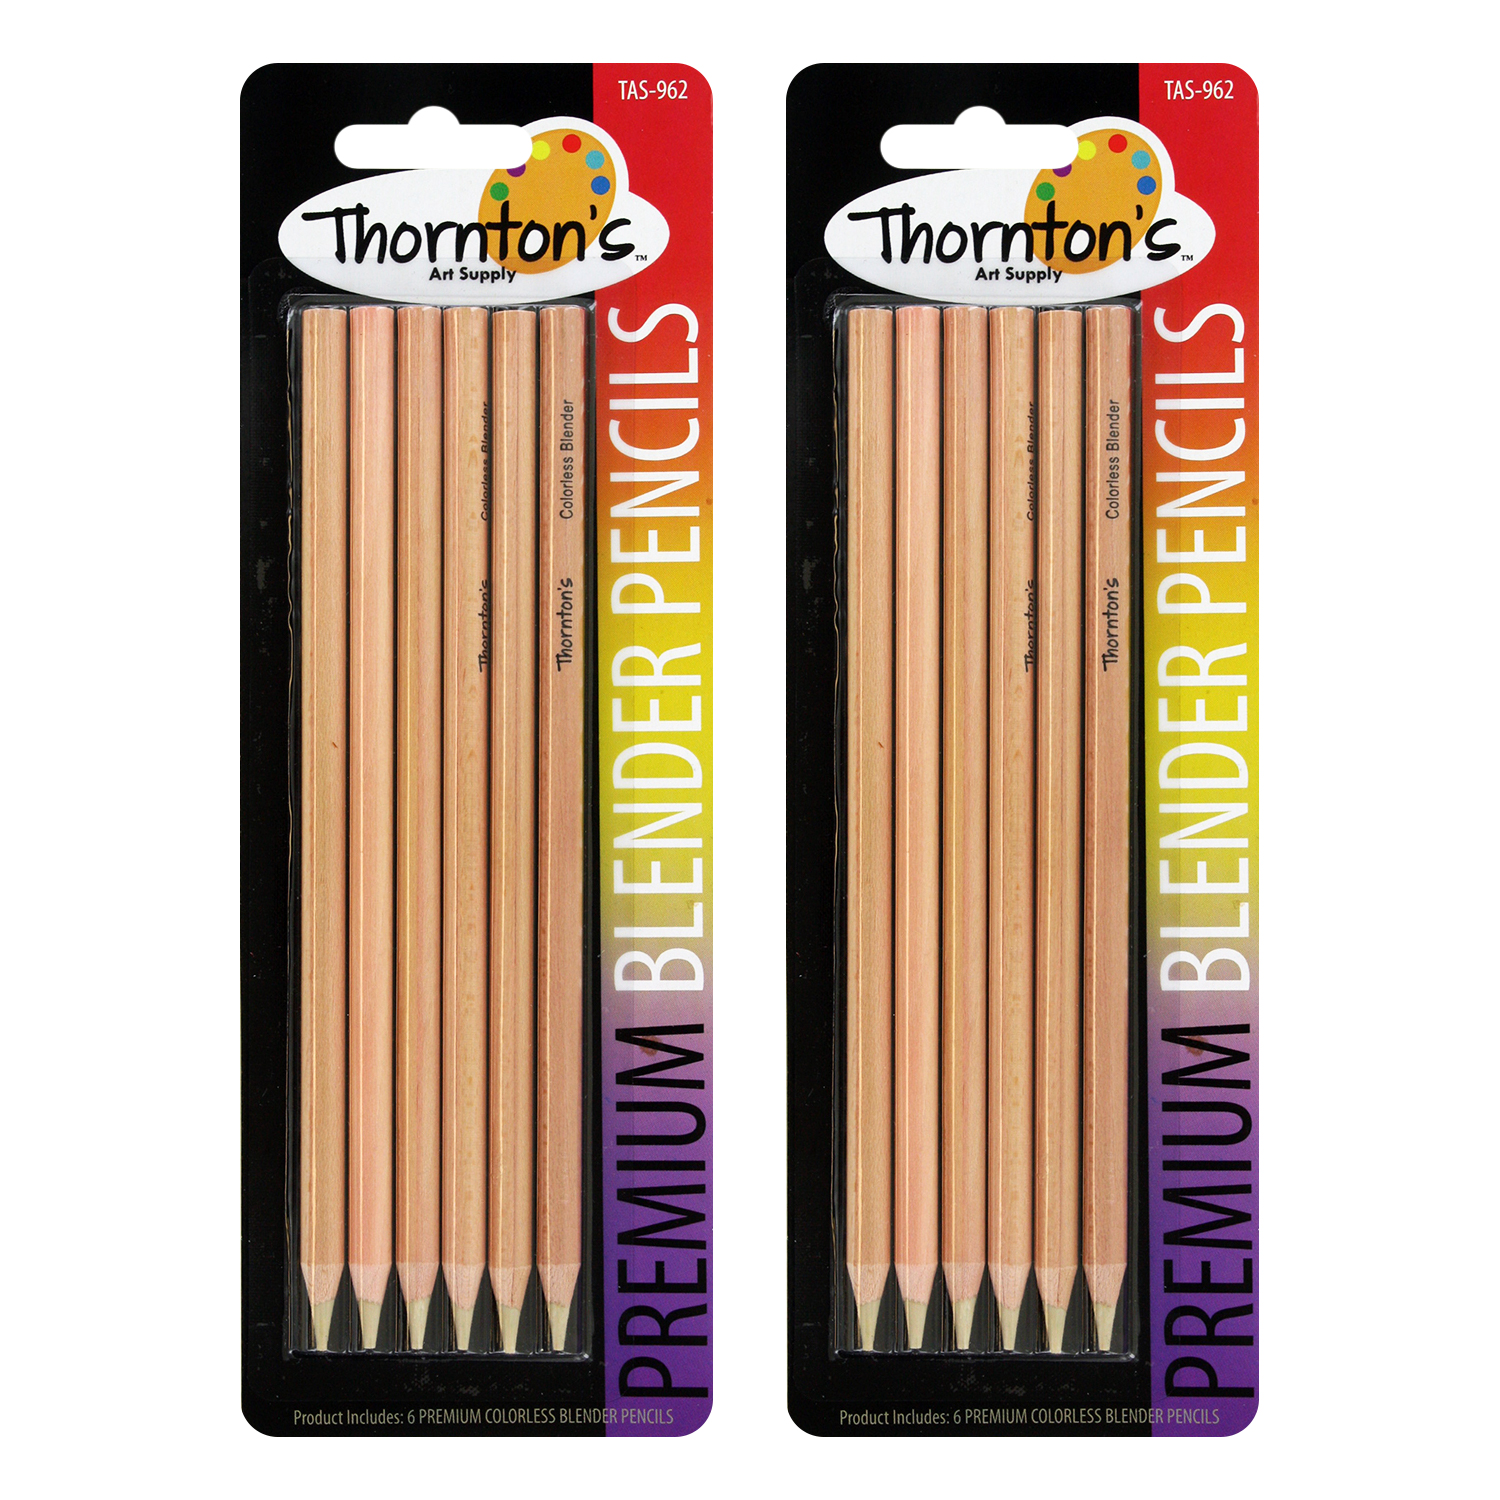 Thornton's Art Supply Premium Colorless Blender Pencils, Pack of 12